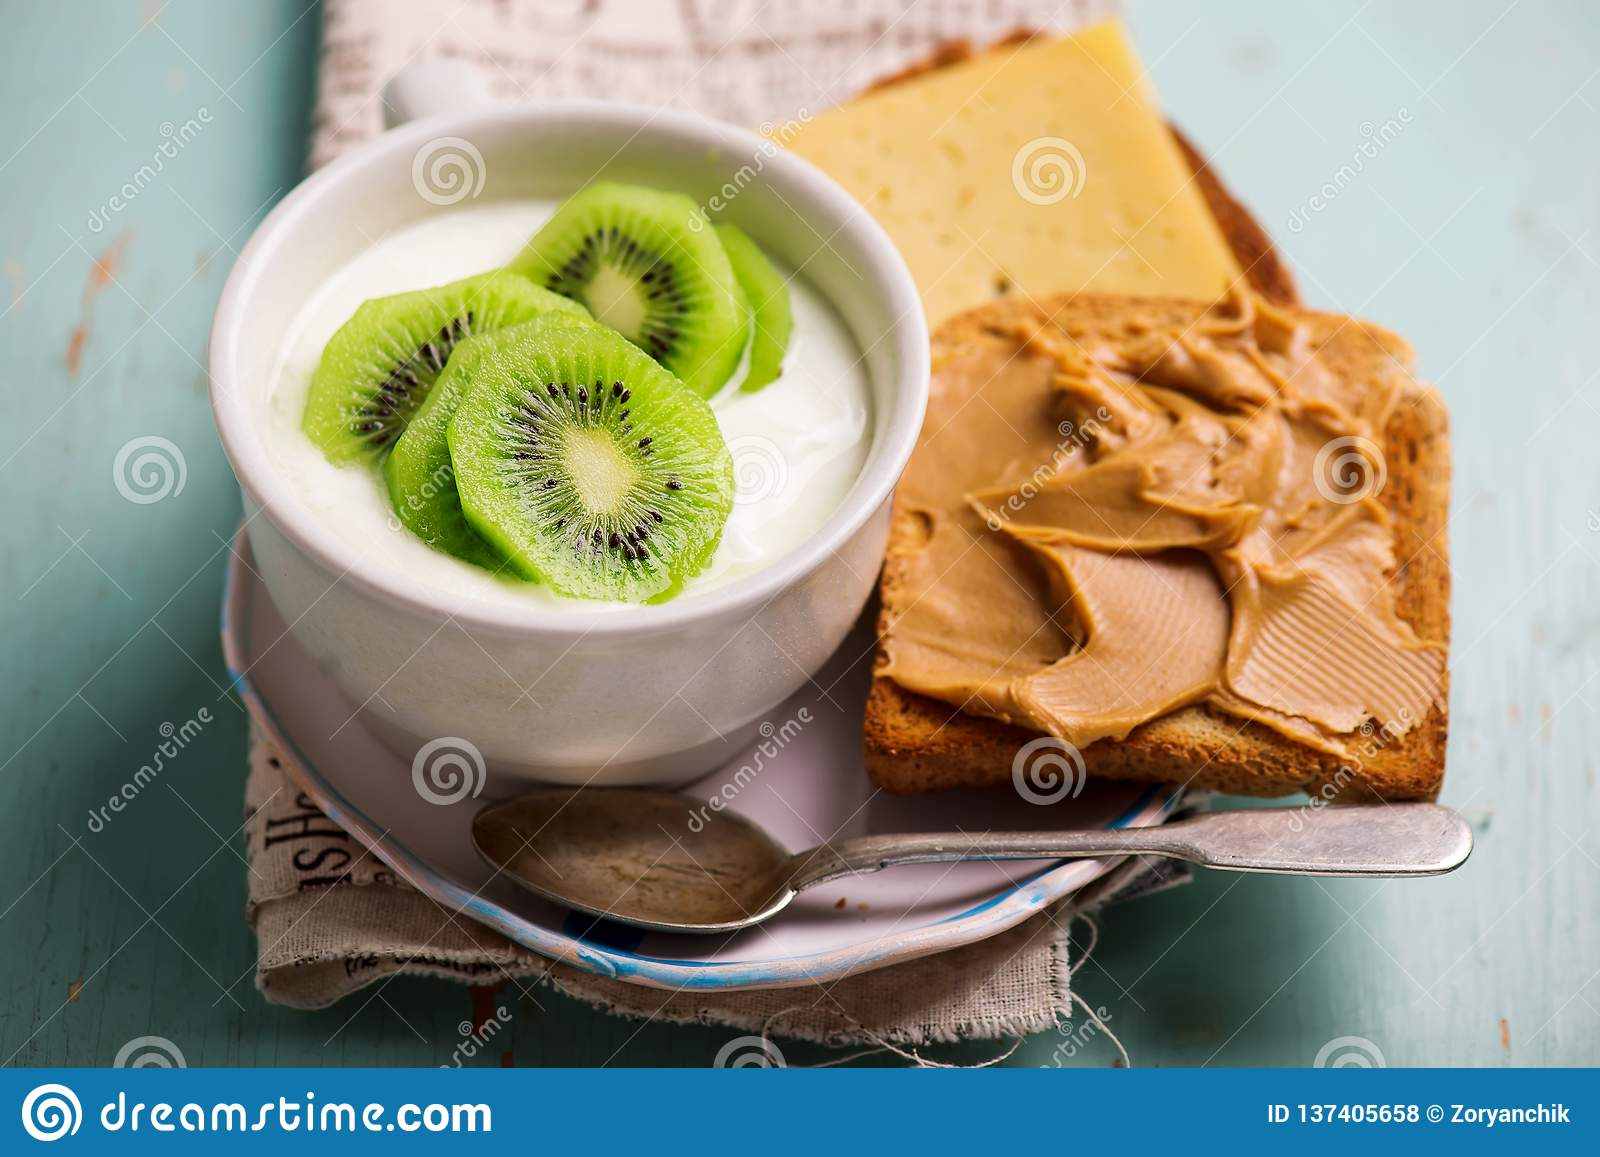 Natural Yoghurt With Kiwi And Peanut Butter Toast Healthy Breakfast Stock Photo Image Of Cuisine Homemade 137405658